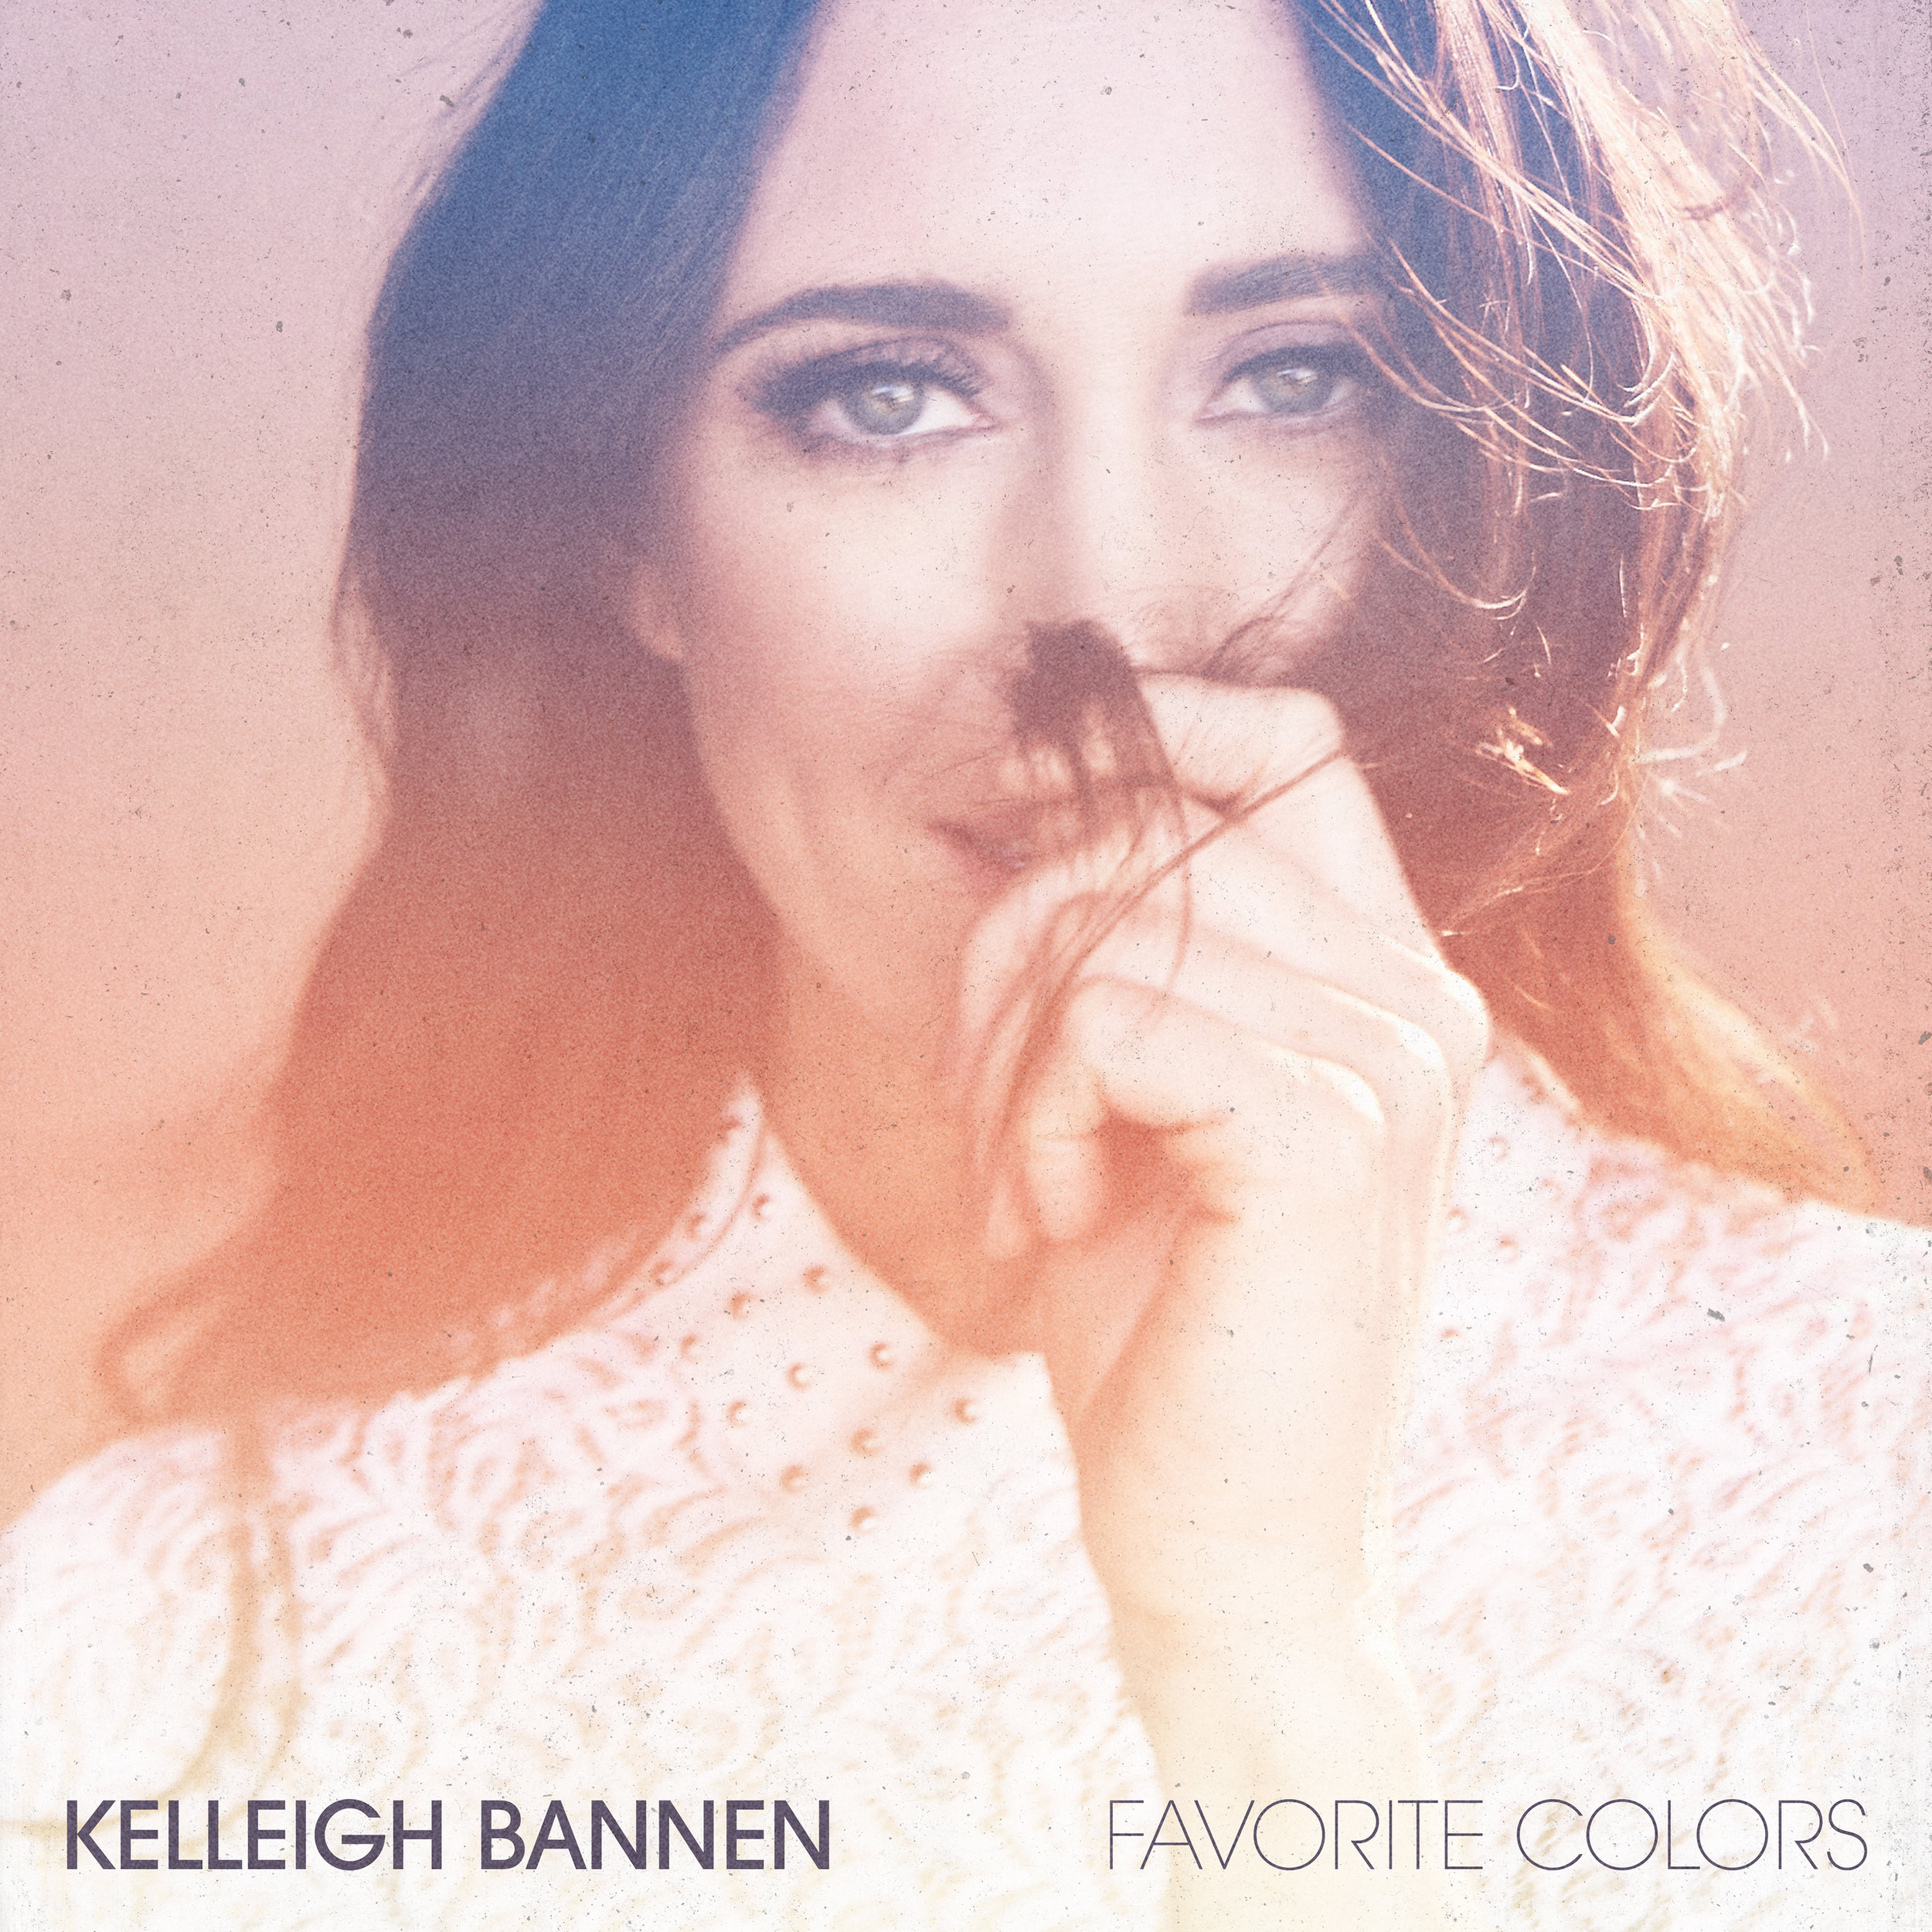 KELLEIGH_BANNEN-FAVORITE_COLORS.jpg